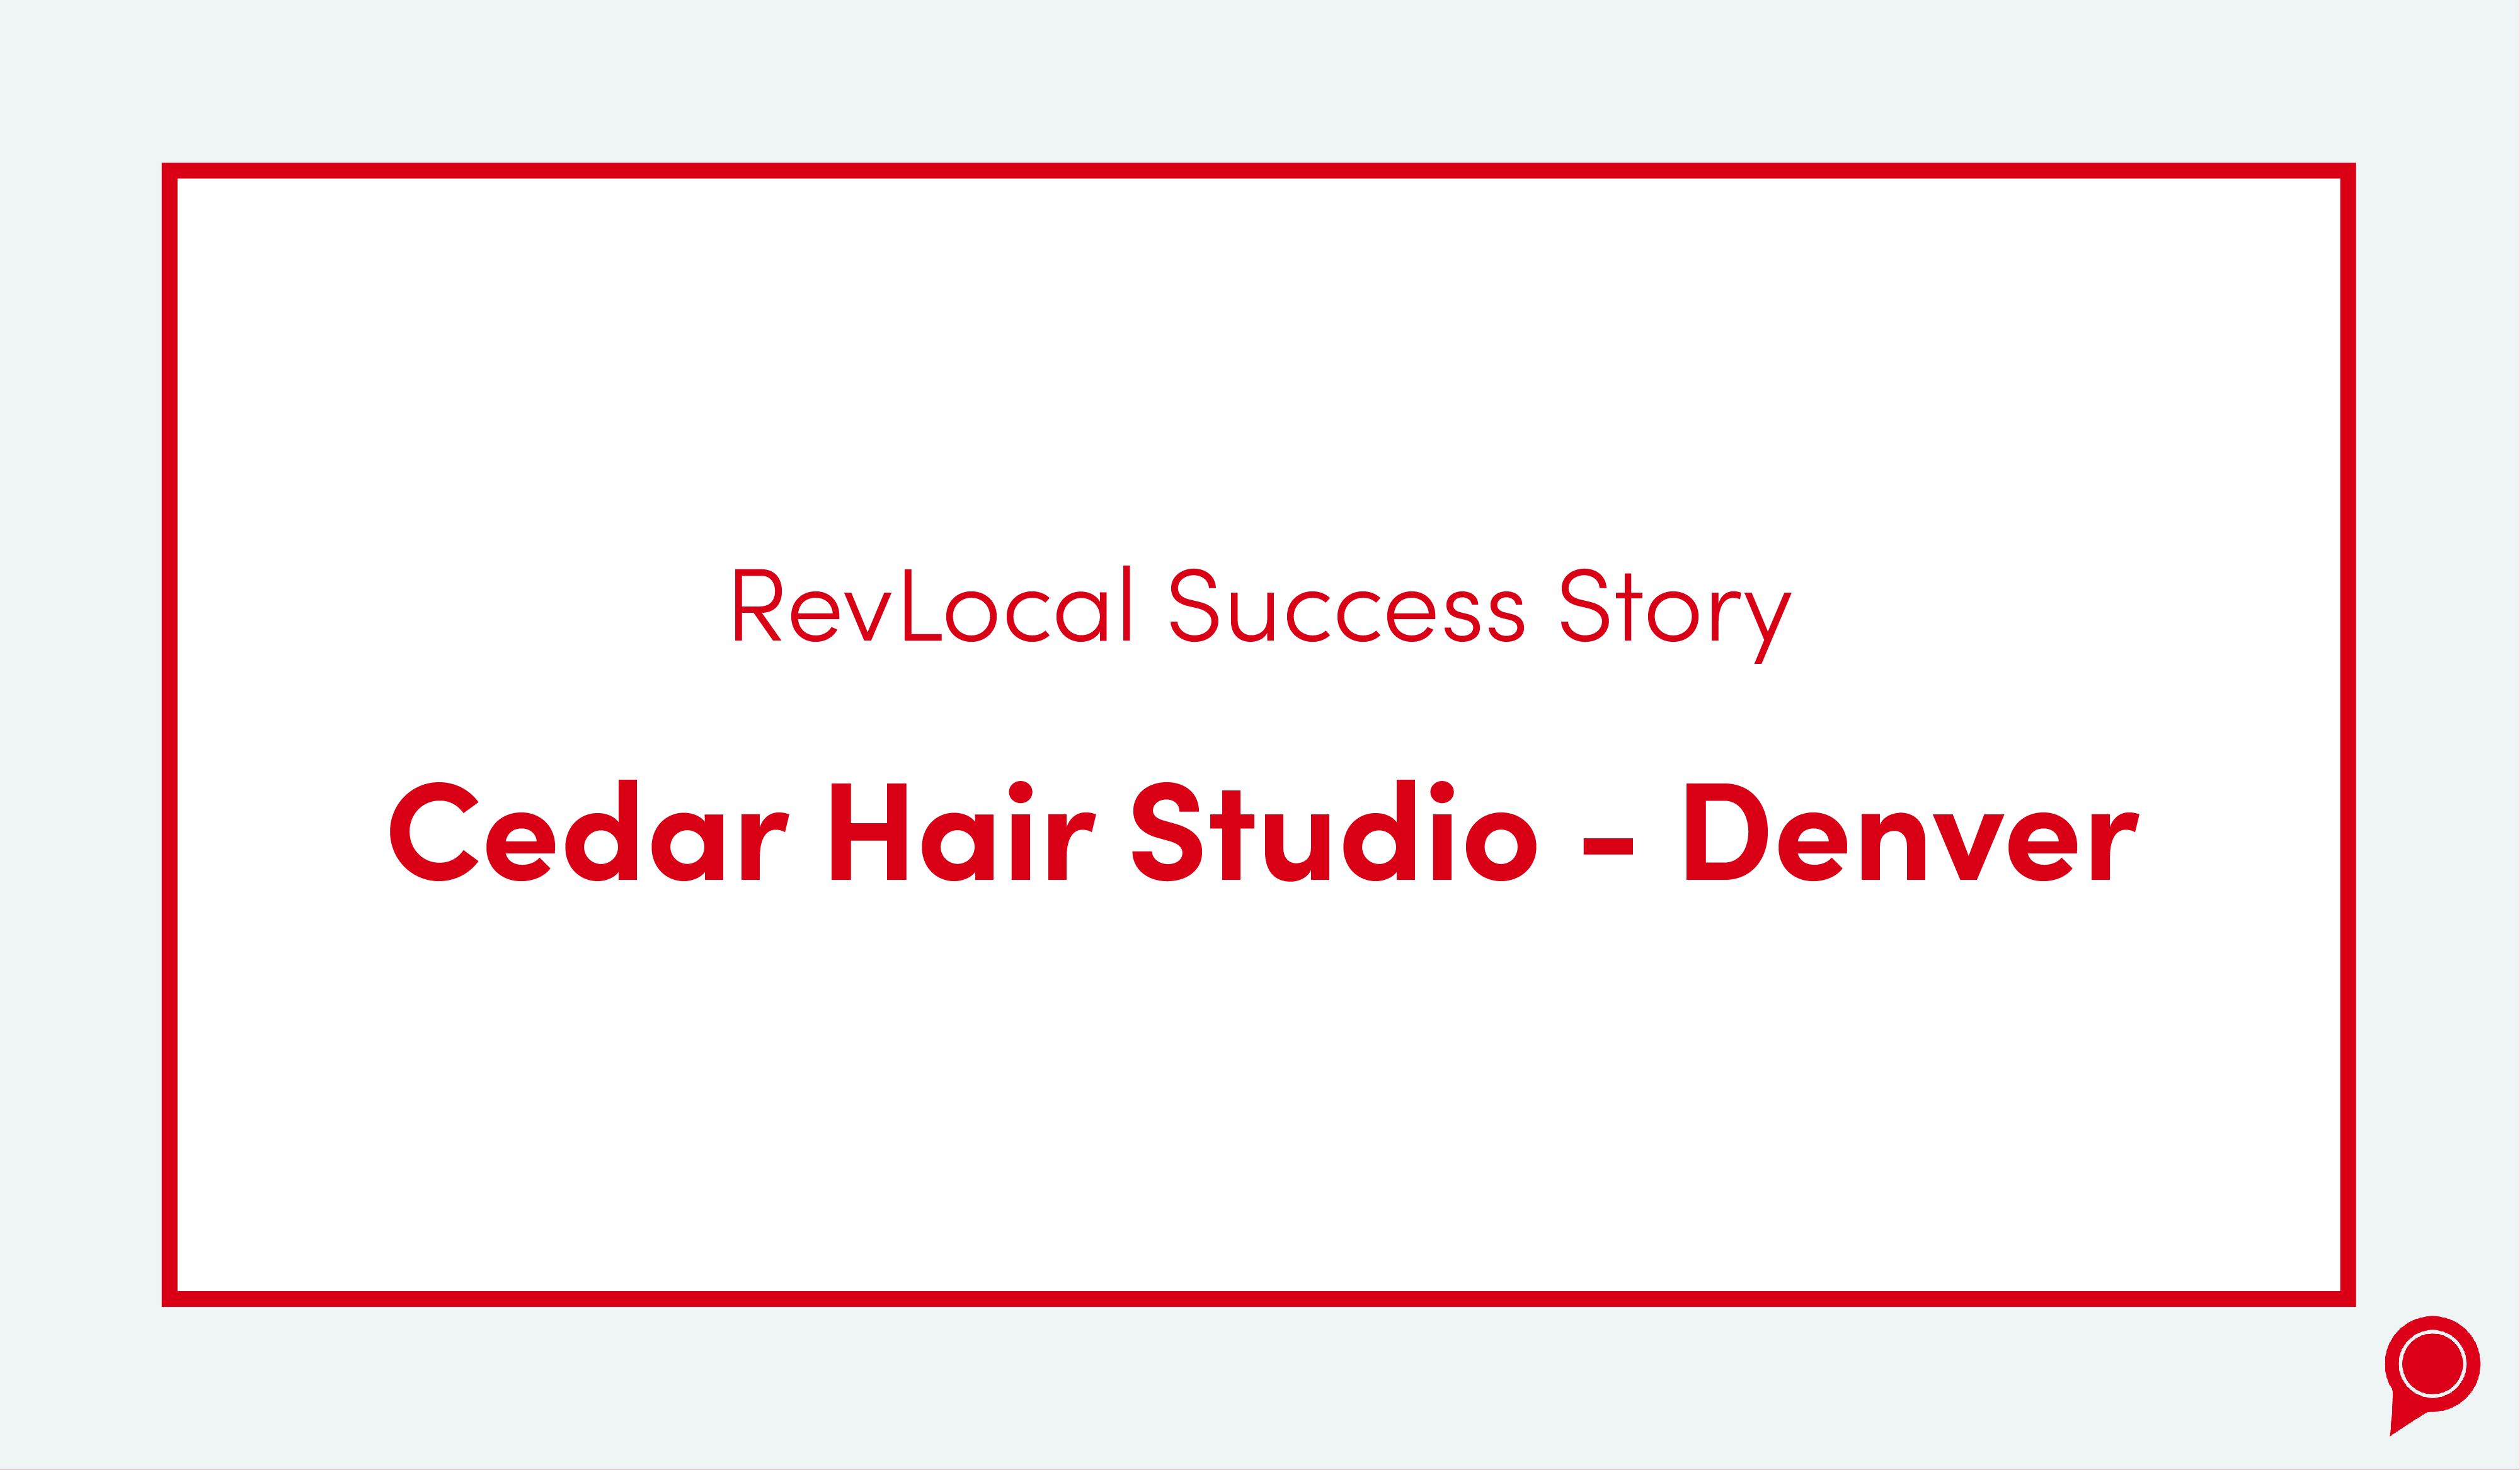 Cedar Hair Studio Success Story